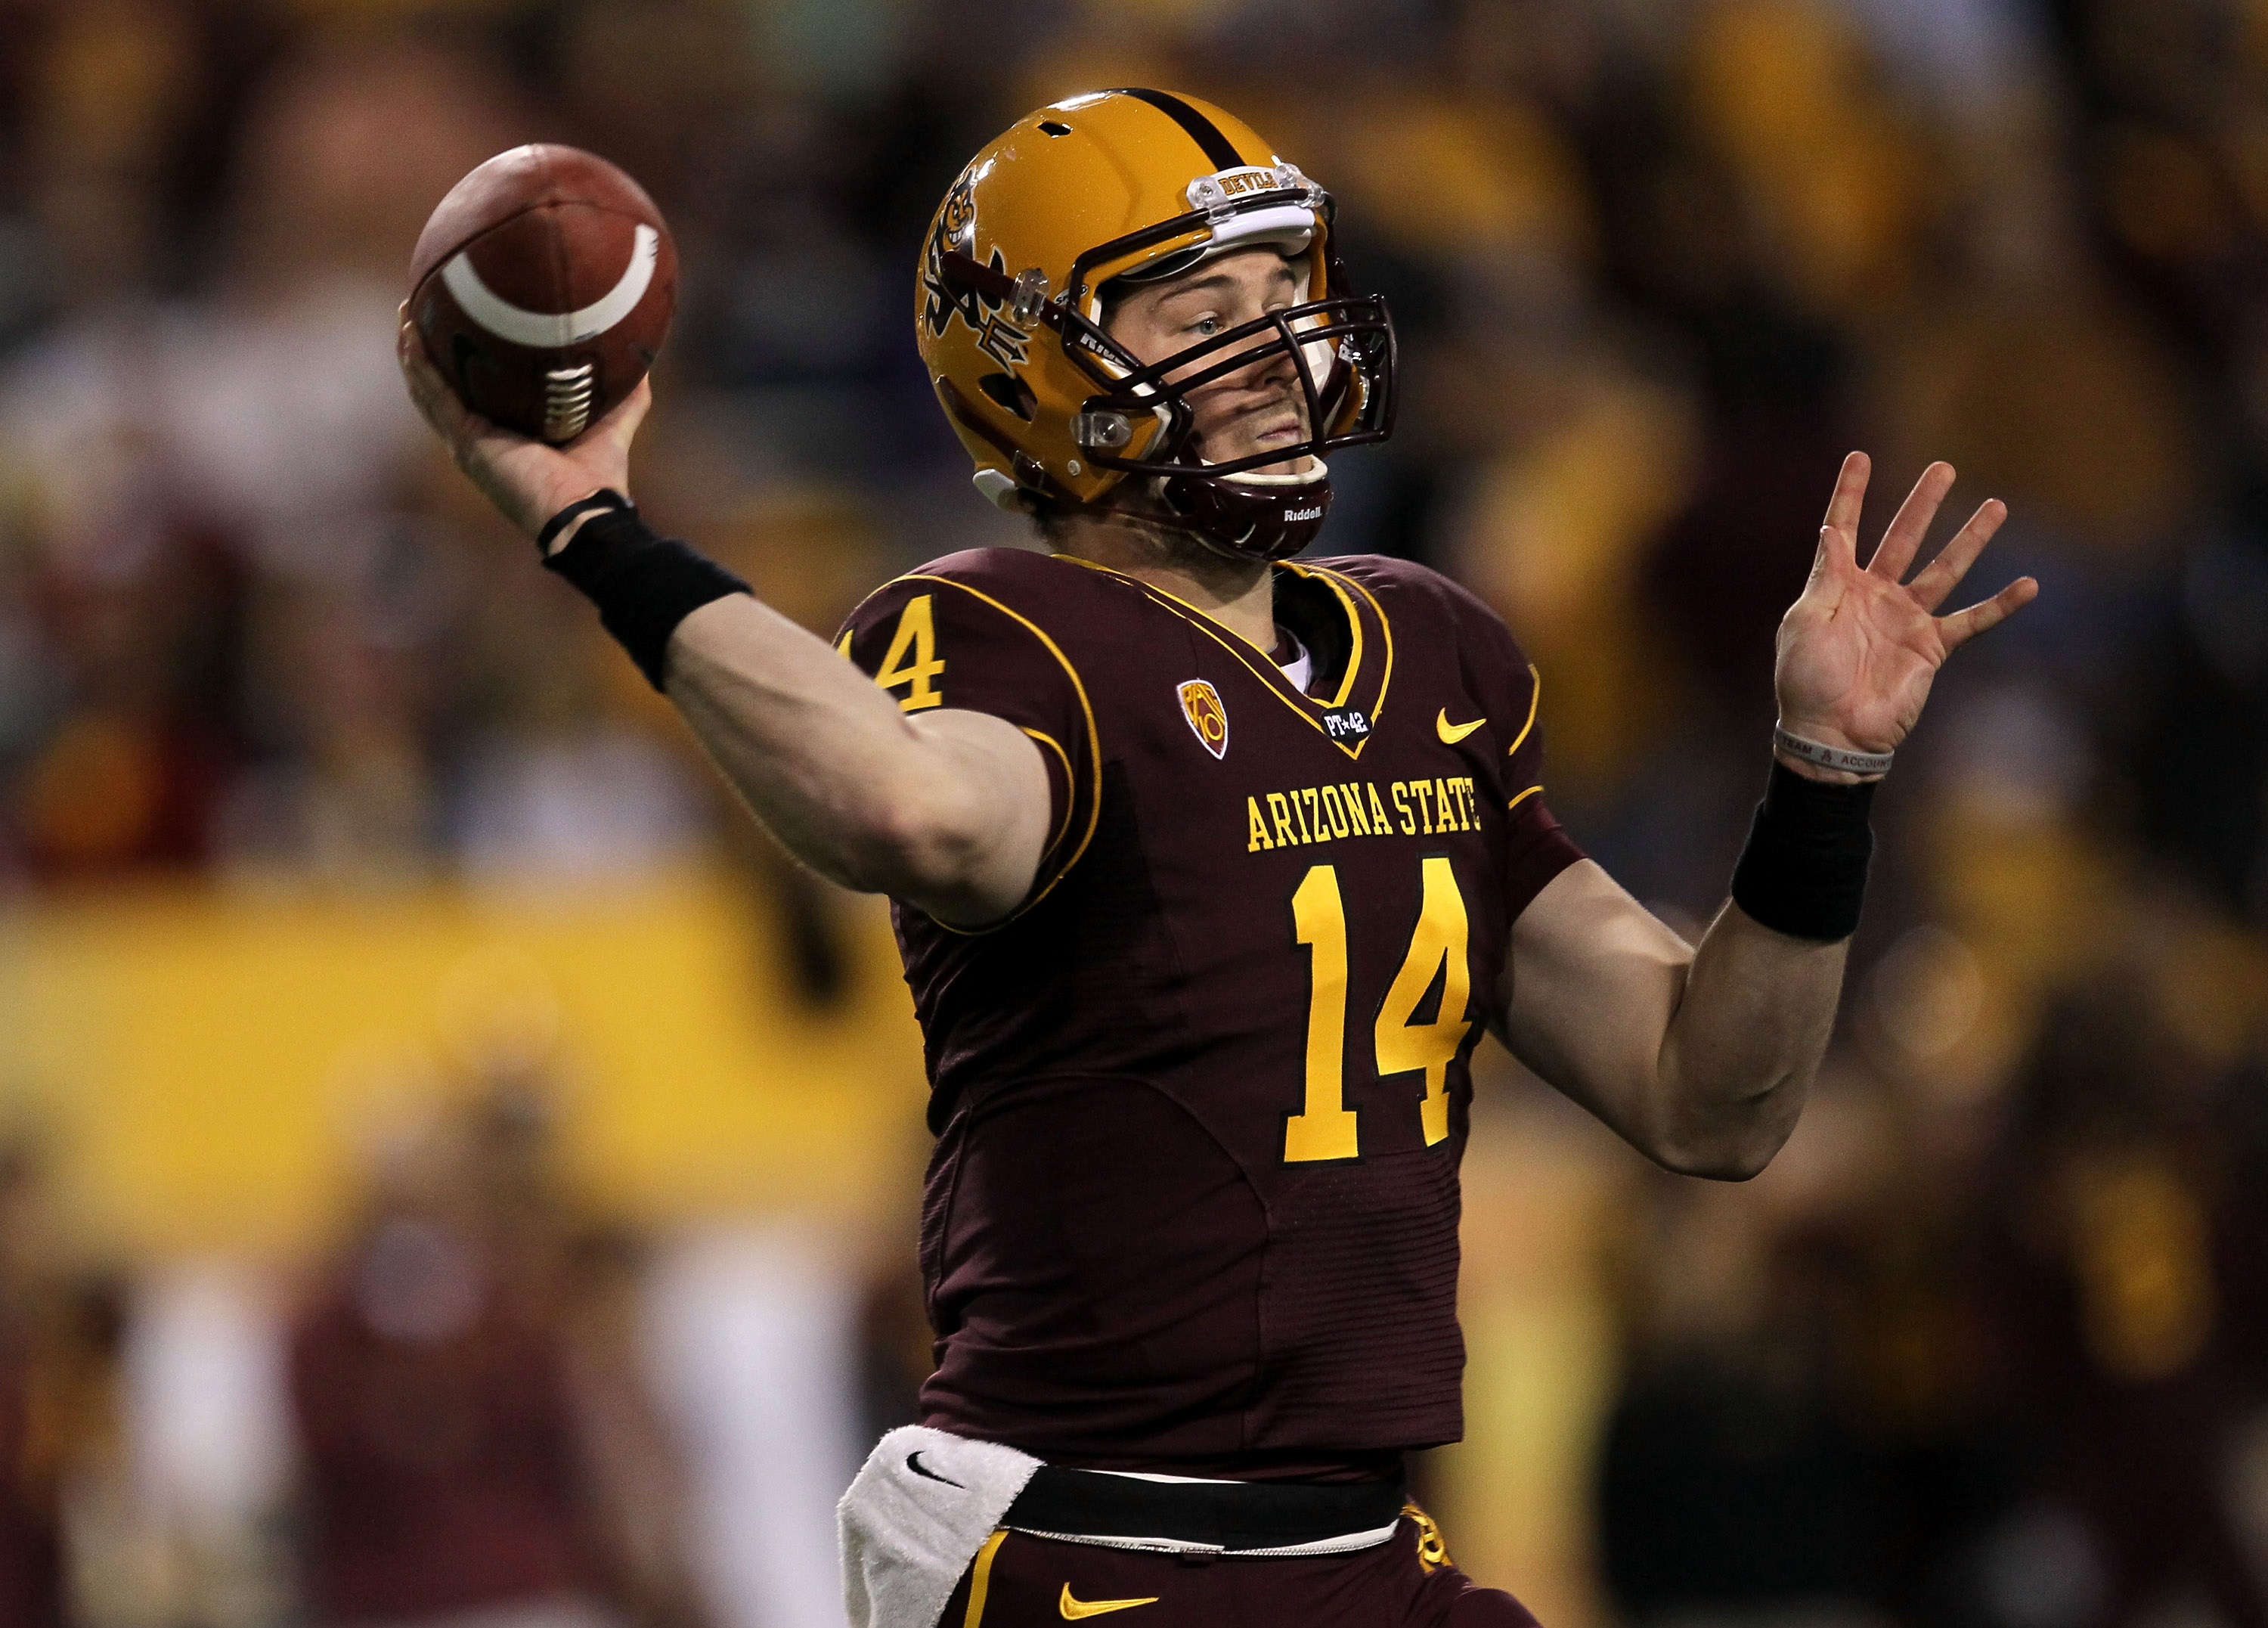 TEMPE, AZ - NOVEMBER 13:  Quarterback Steven Threet #14 of the Arizona State Sun Devils throws a pass against the Stanford Cardinal at Sun Devil Stadium on November 13, 2010 in Tempe, Arizona. (Photo by Stephen Dunn/Getty Images)